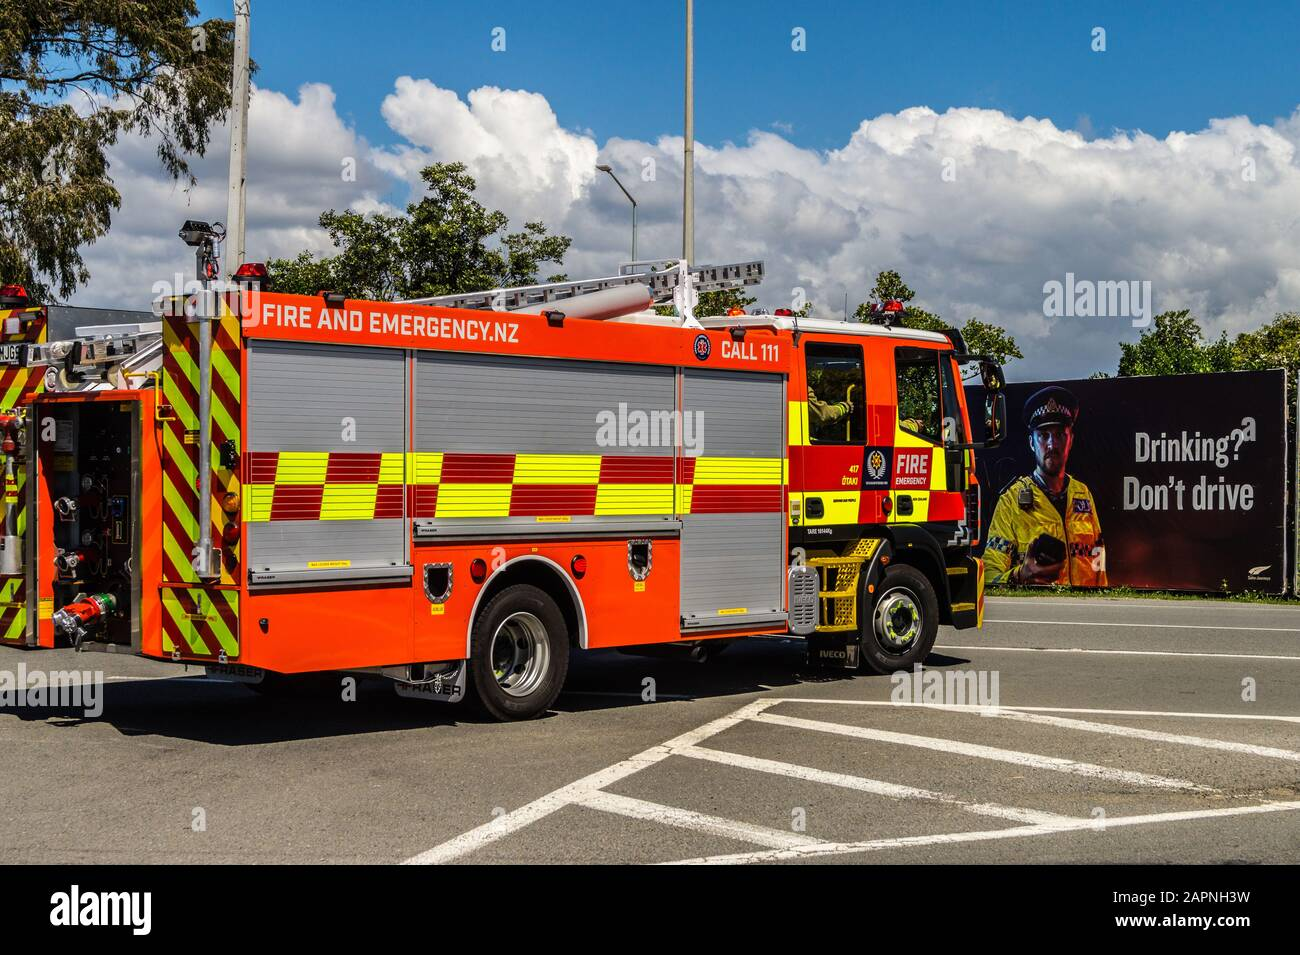 iveco-ec1225-fire-appliance-responding-to-an-emergency-call-passing-a-drink-driving-poster-taki-north-island-new-zealand-2APNH3W.jpg